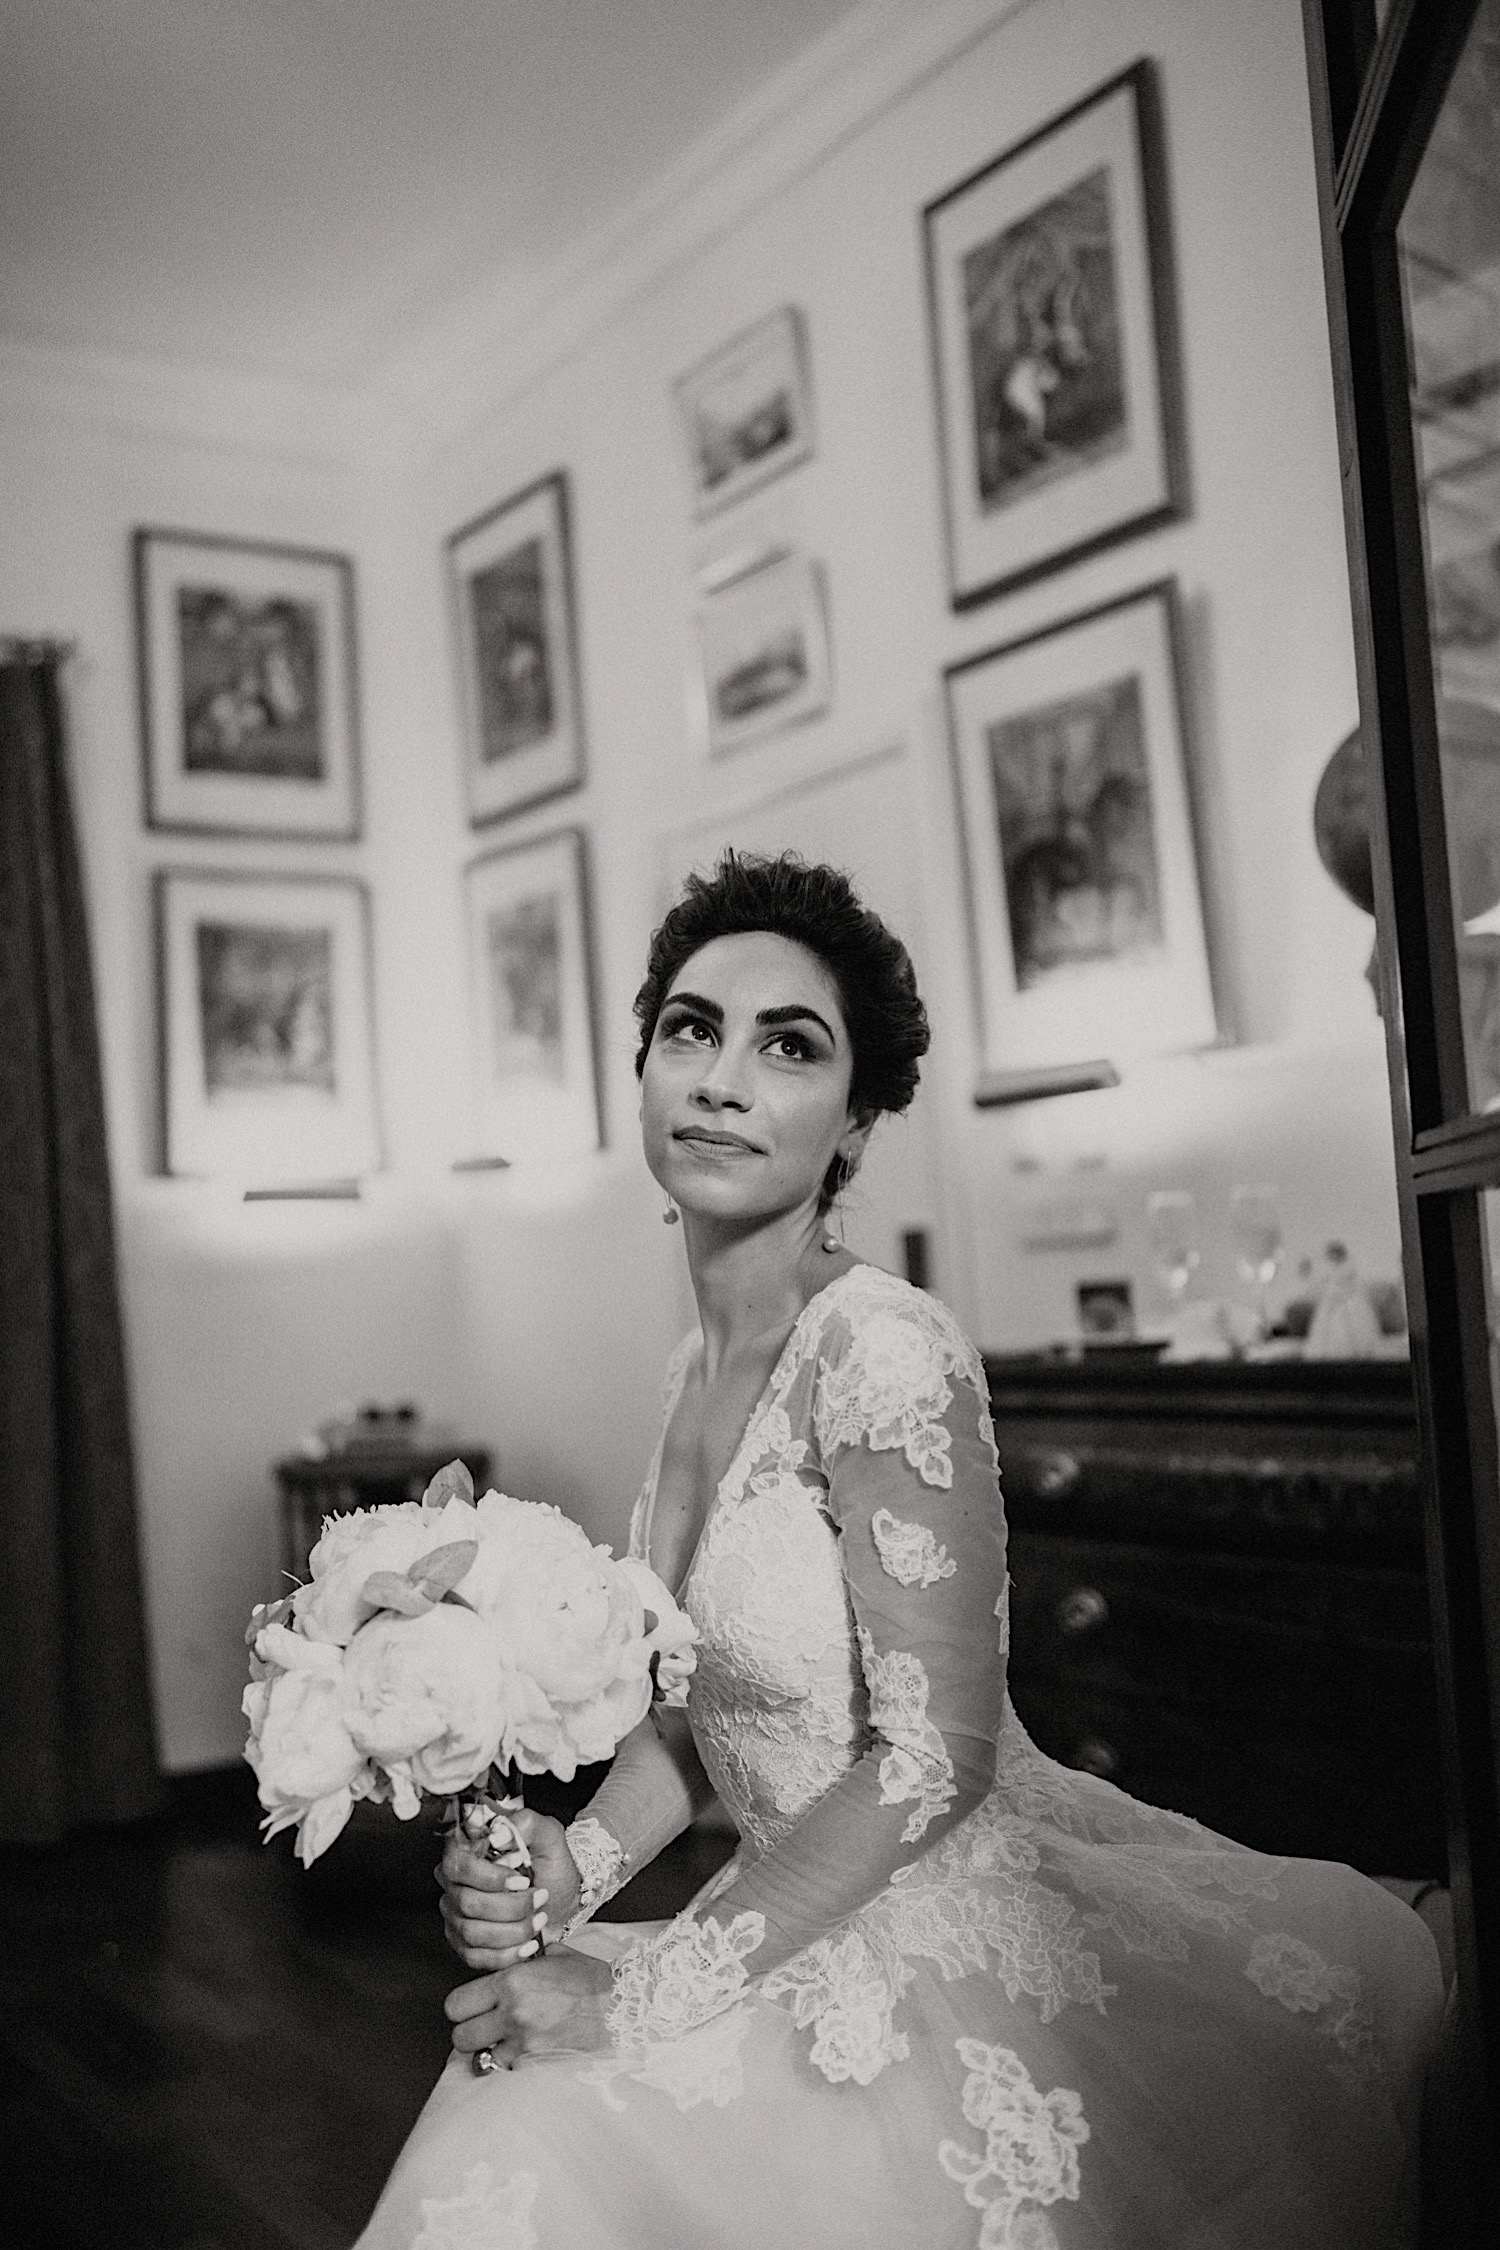 weddingphotographersevilla-persianwedding-ernestovillalba-0008.JPG